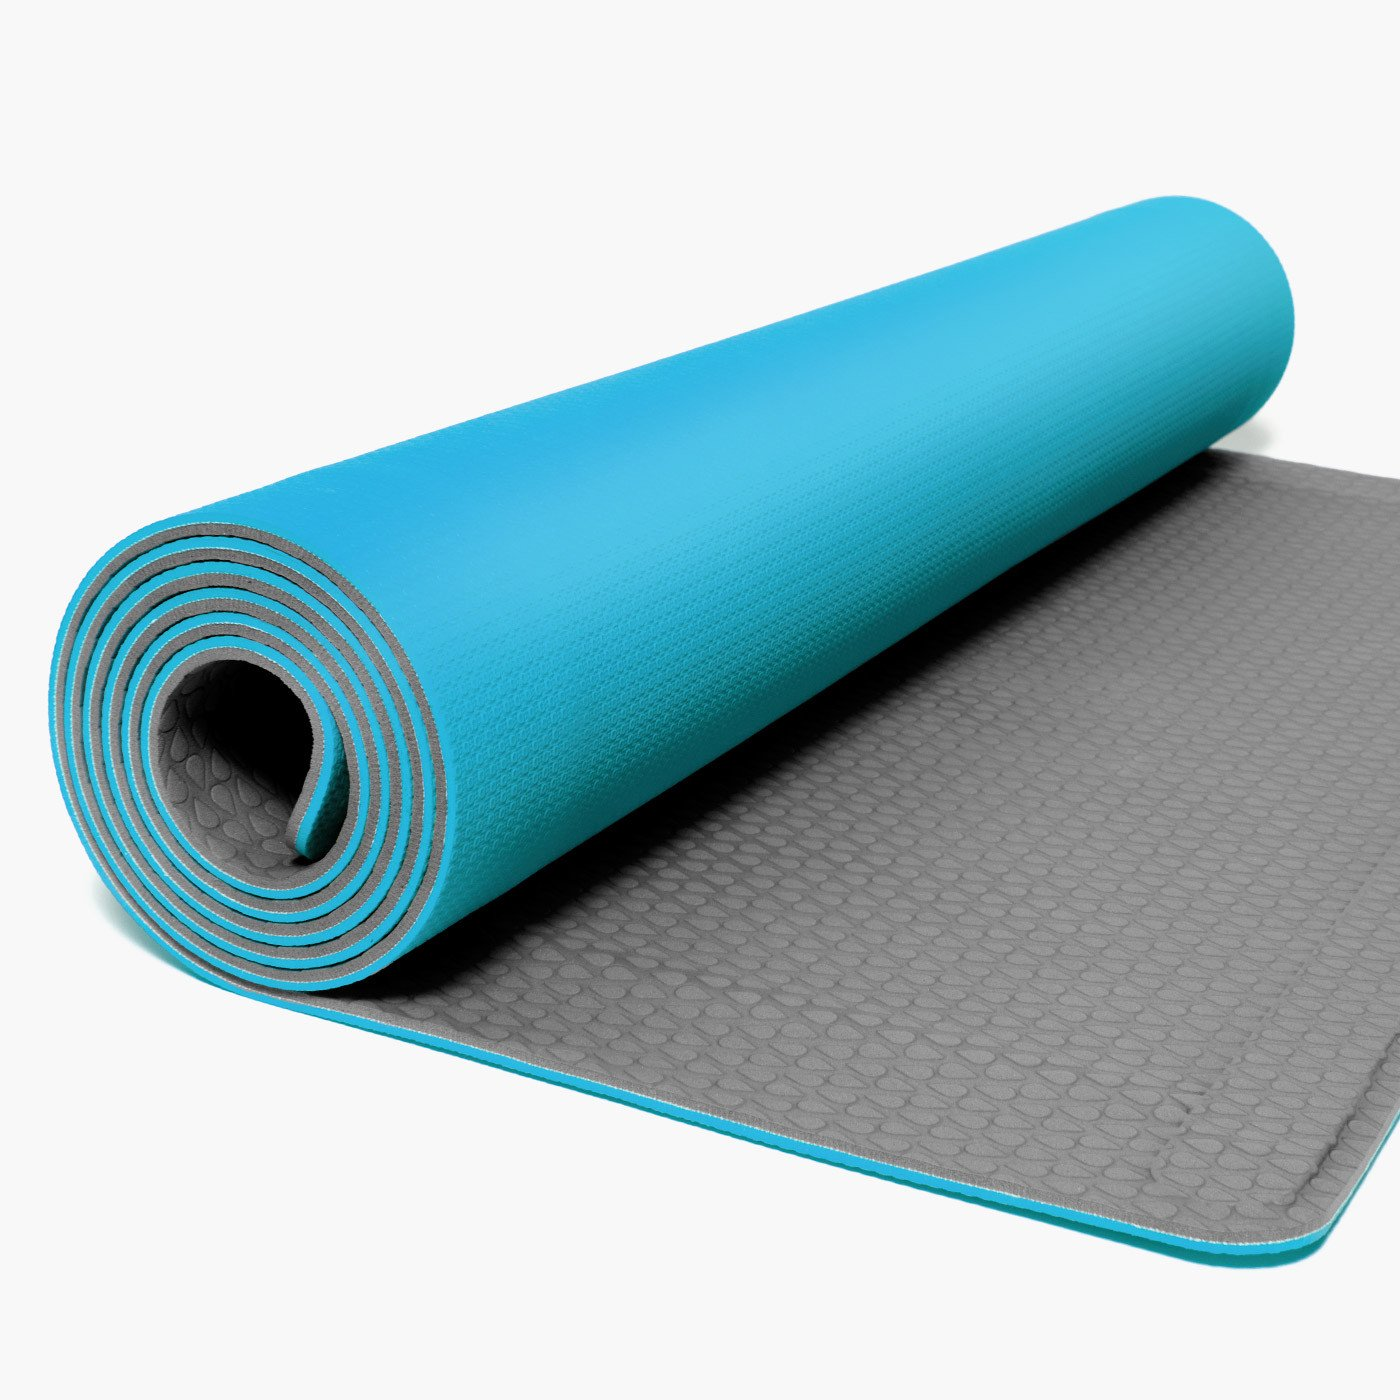 Amazon.com : YoYo Mats - Self Rolling Fitness & Yoga Mat 24\